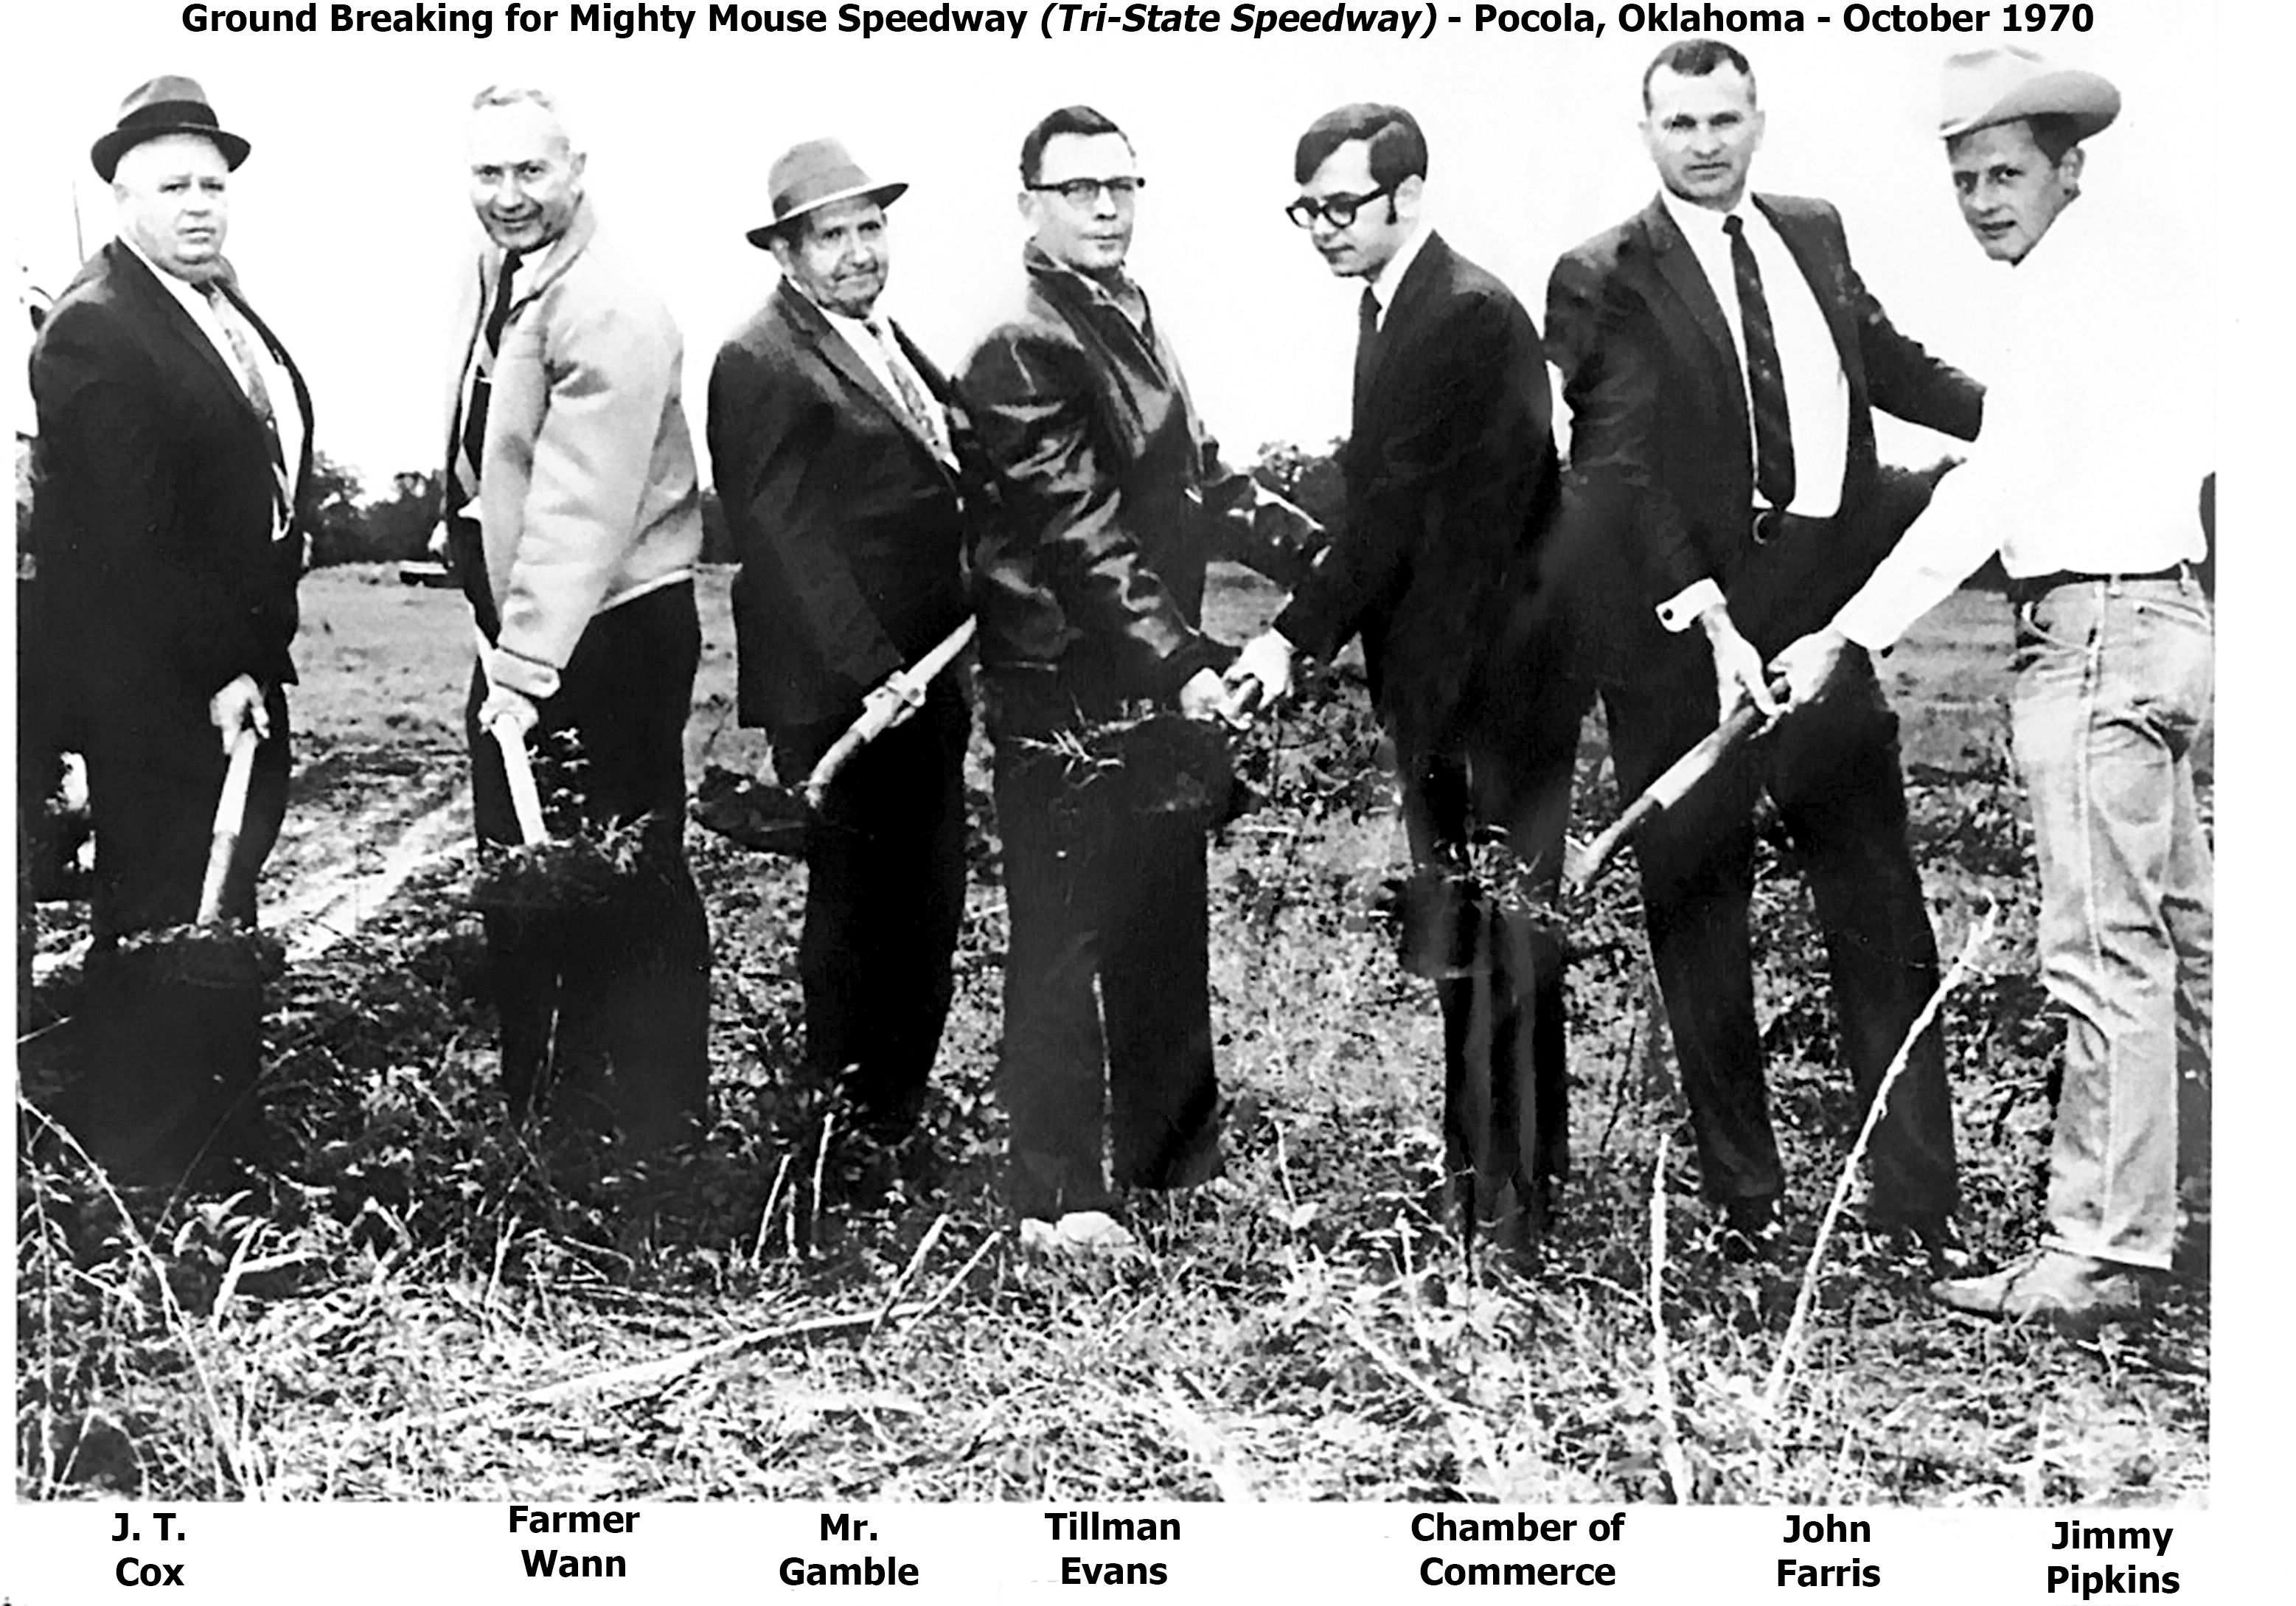 Groundbreaking for Mighty Mouse Speedway - October 1970